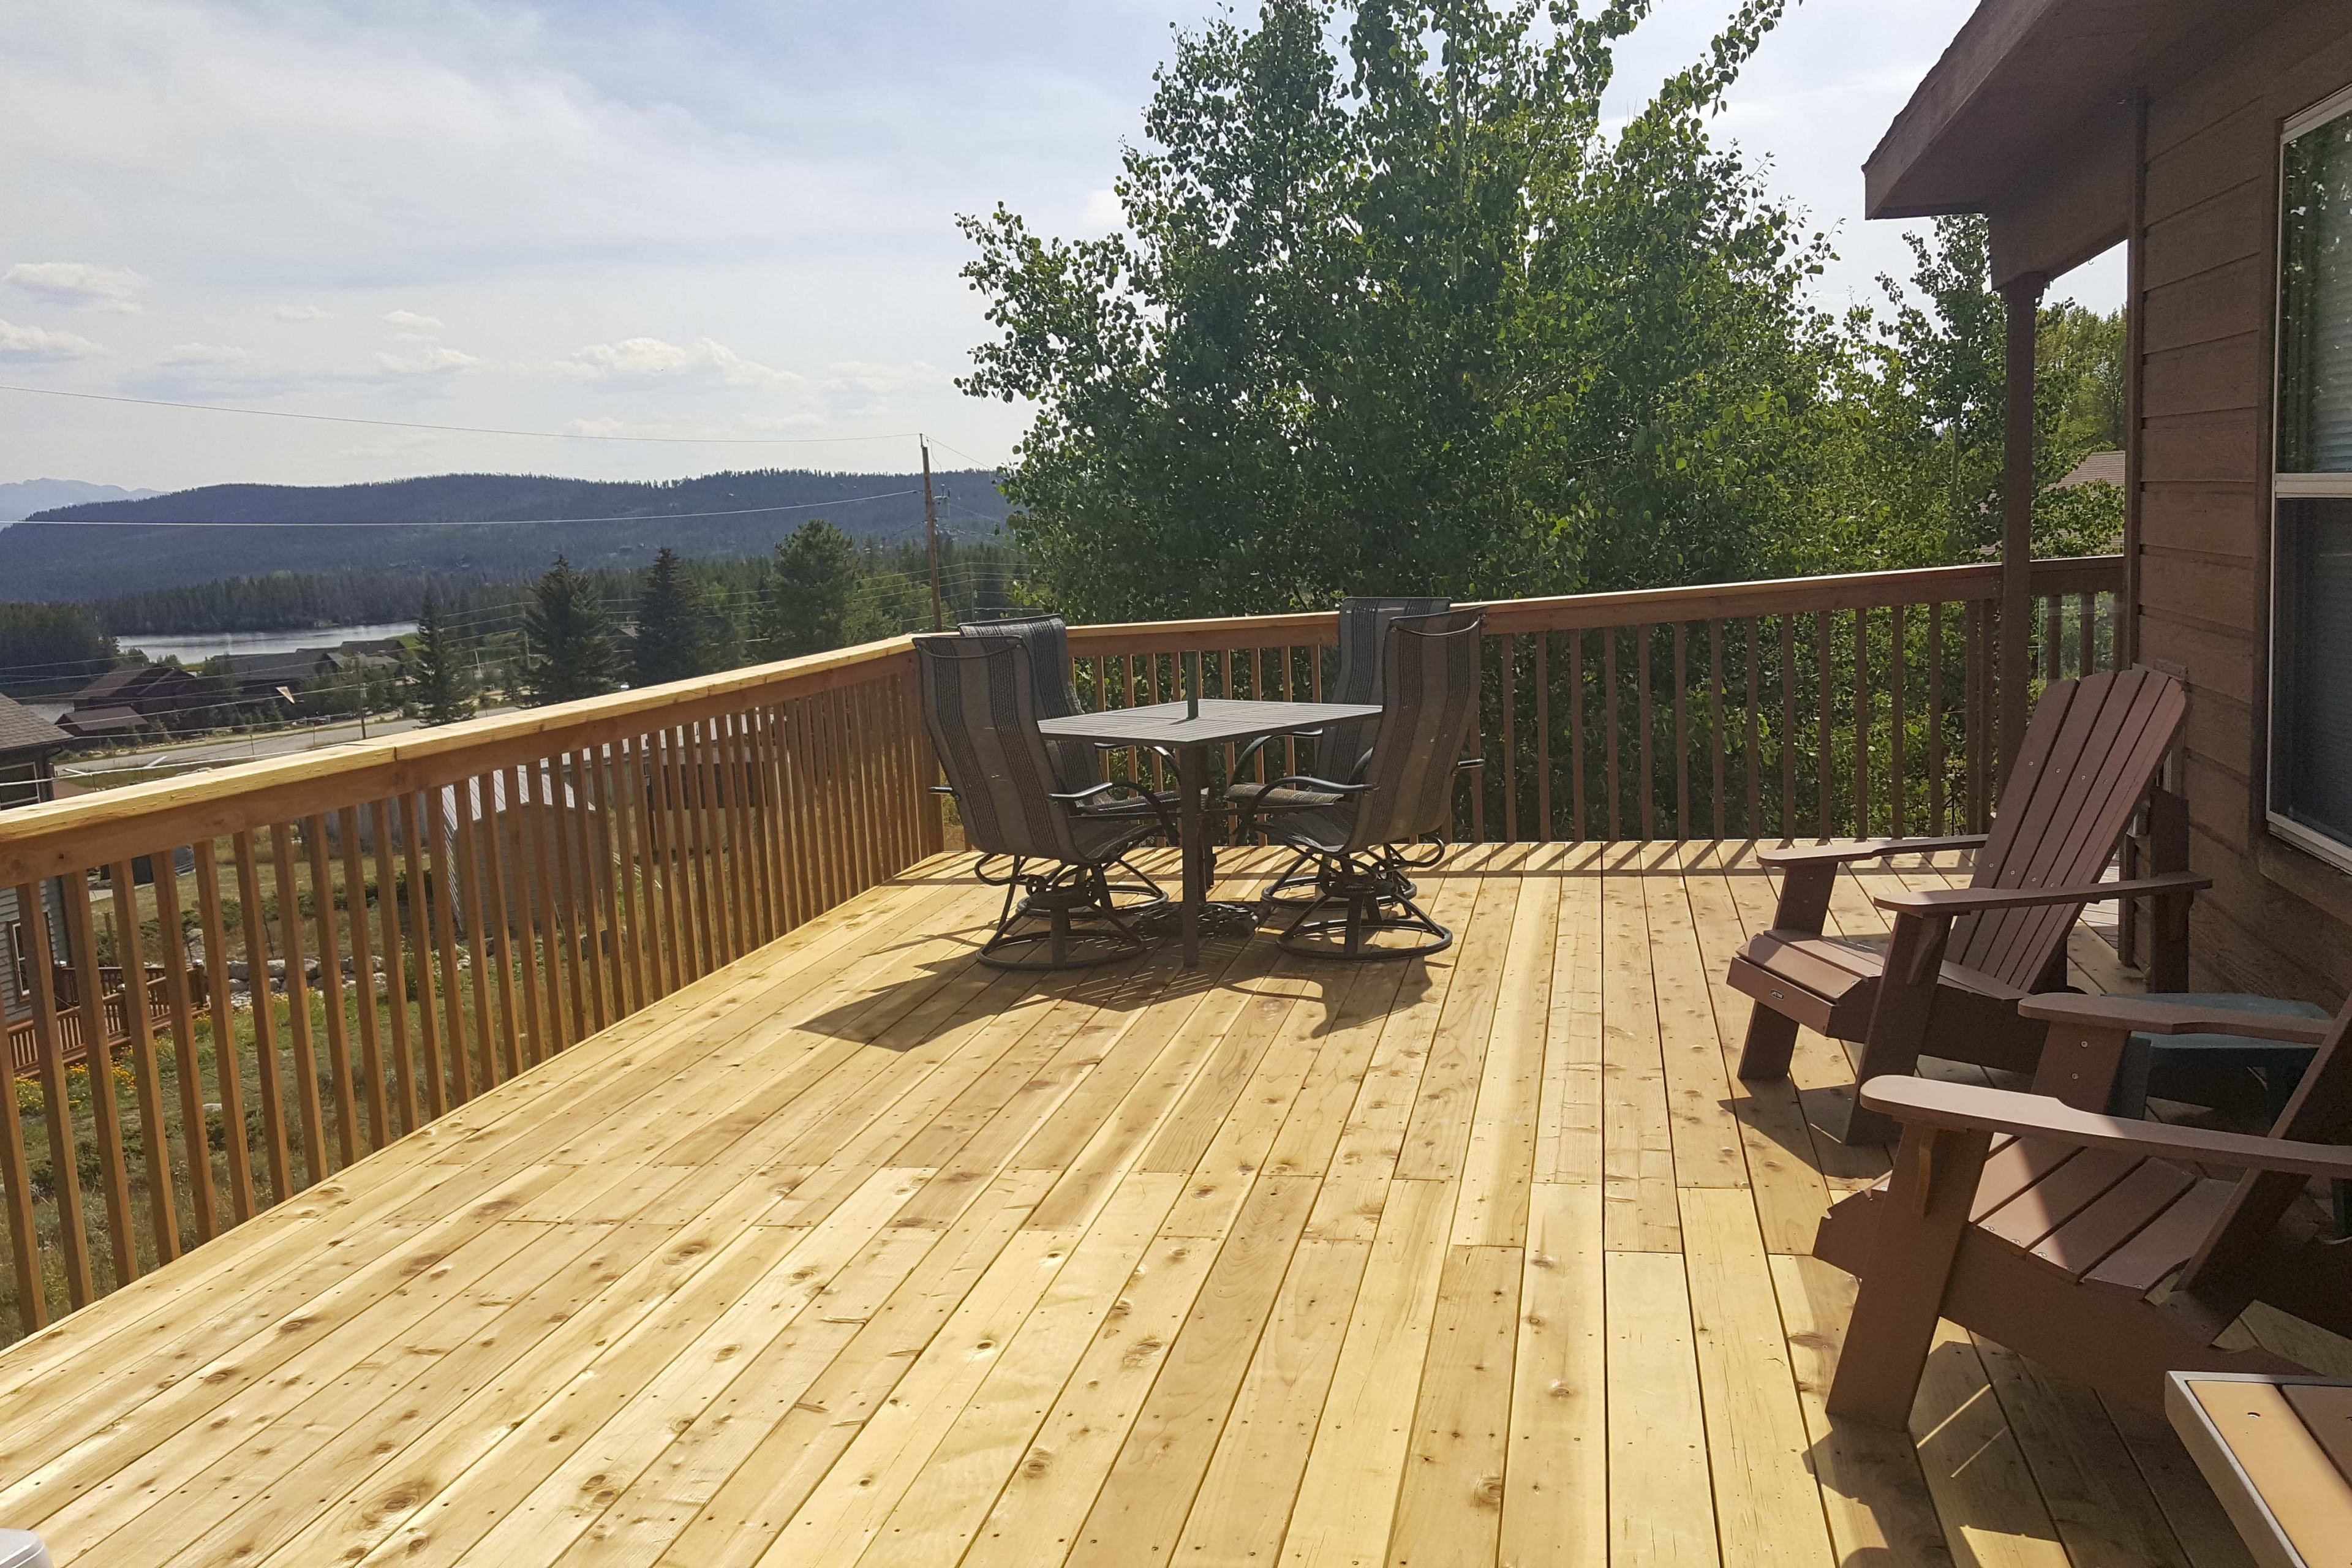 The newly renovated deck is sure to impress!